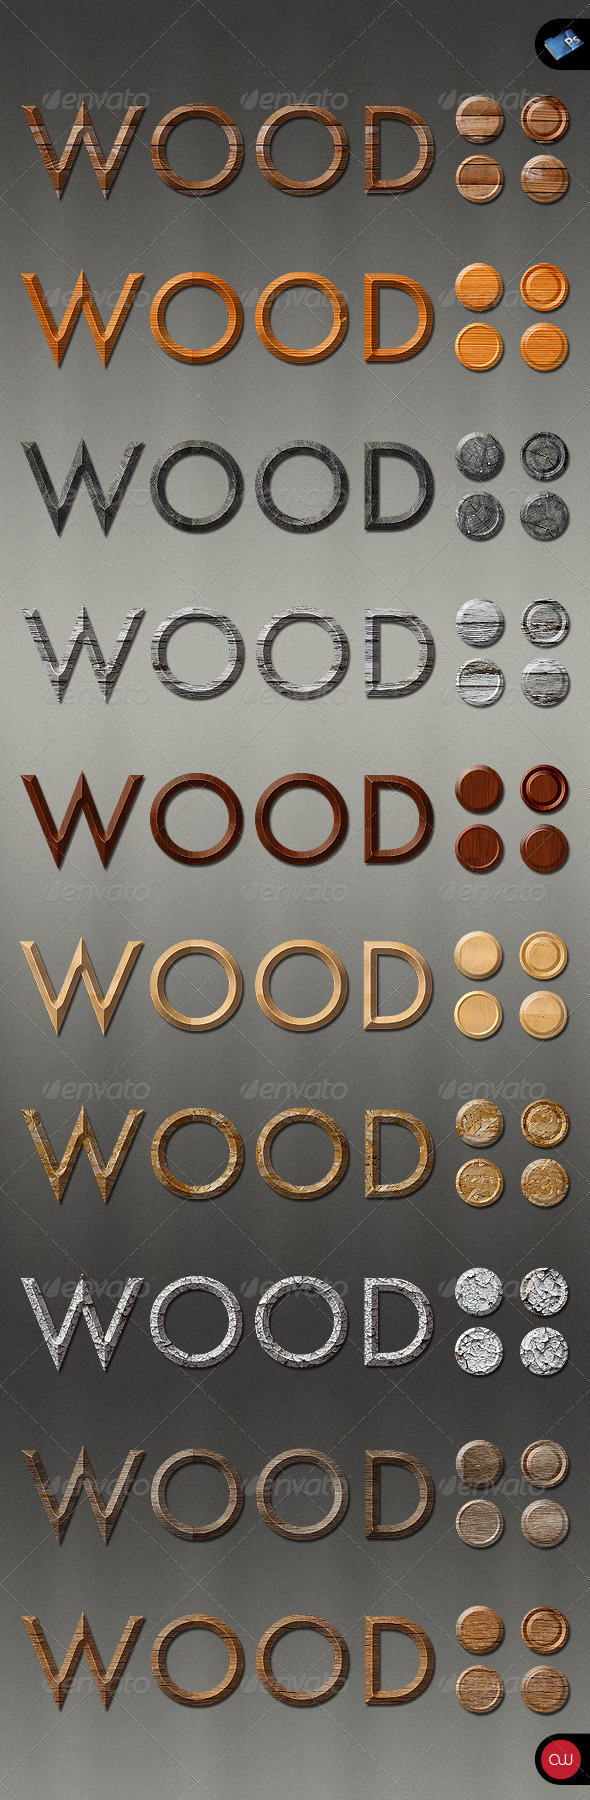 Graphic River Text & Effects Wood Styles Add-ons -  Photoshop  Styles  Text Effects 161277